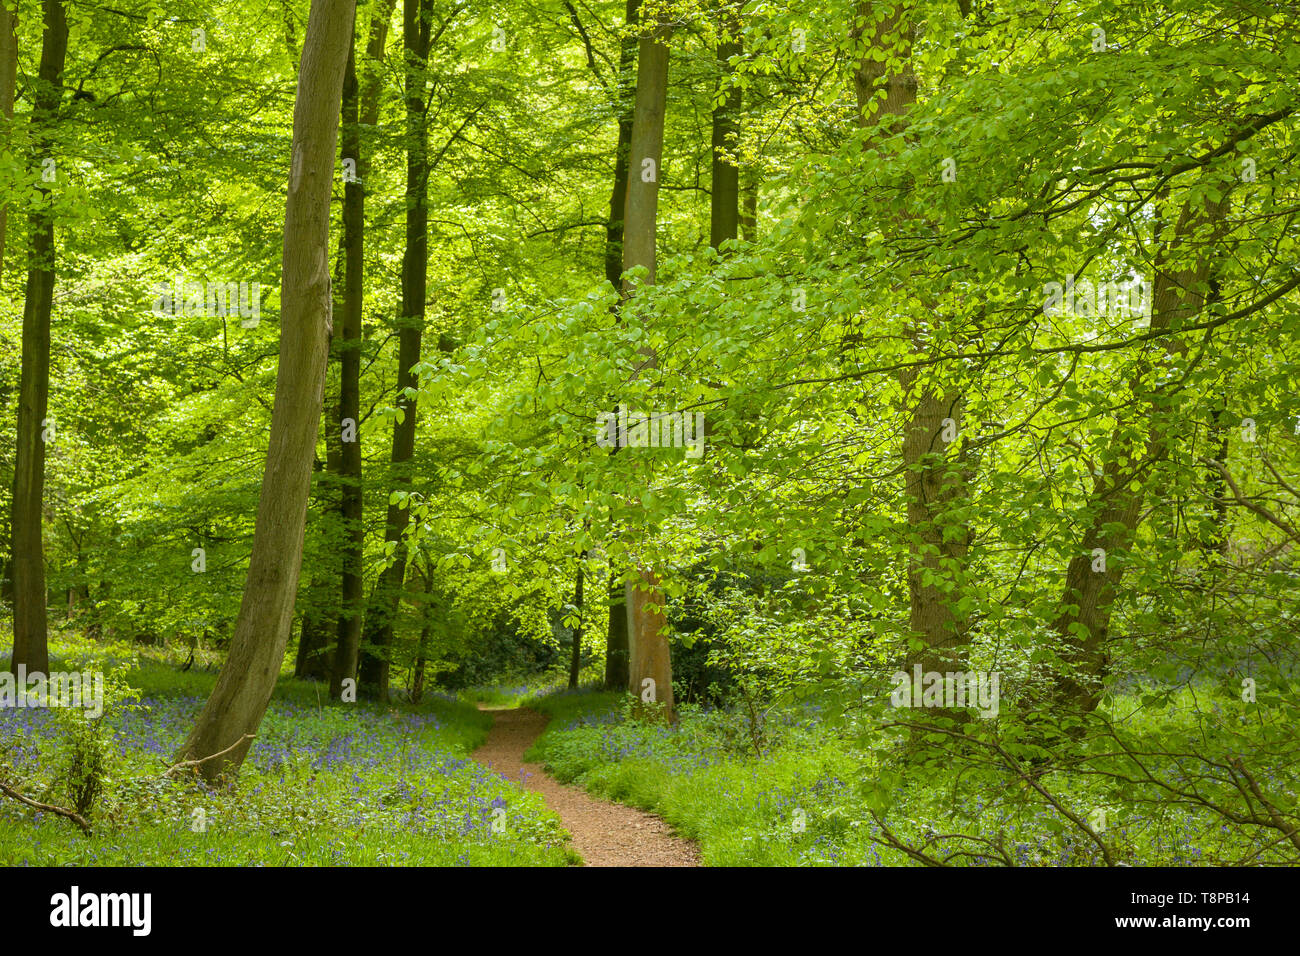 Beech woods in Spring with bright fresh green foliage and bluebells near Henley-on-Thames, Oxfordshire - Stock Image